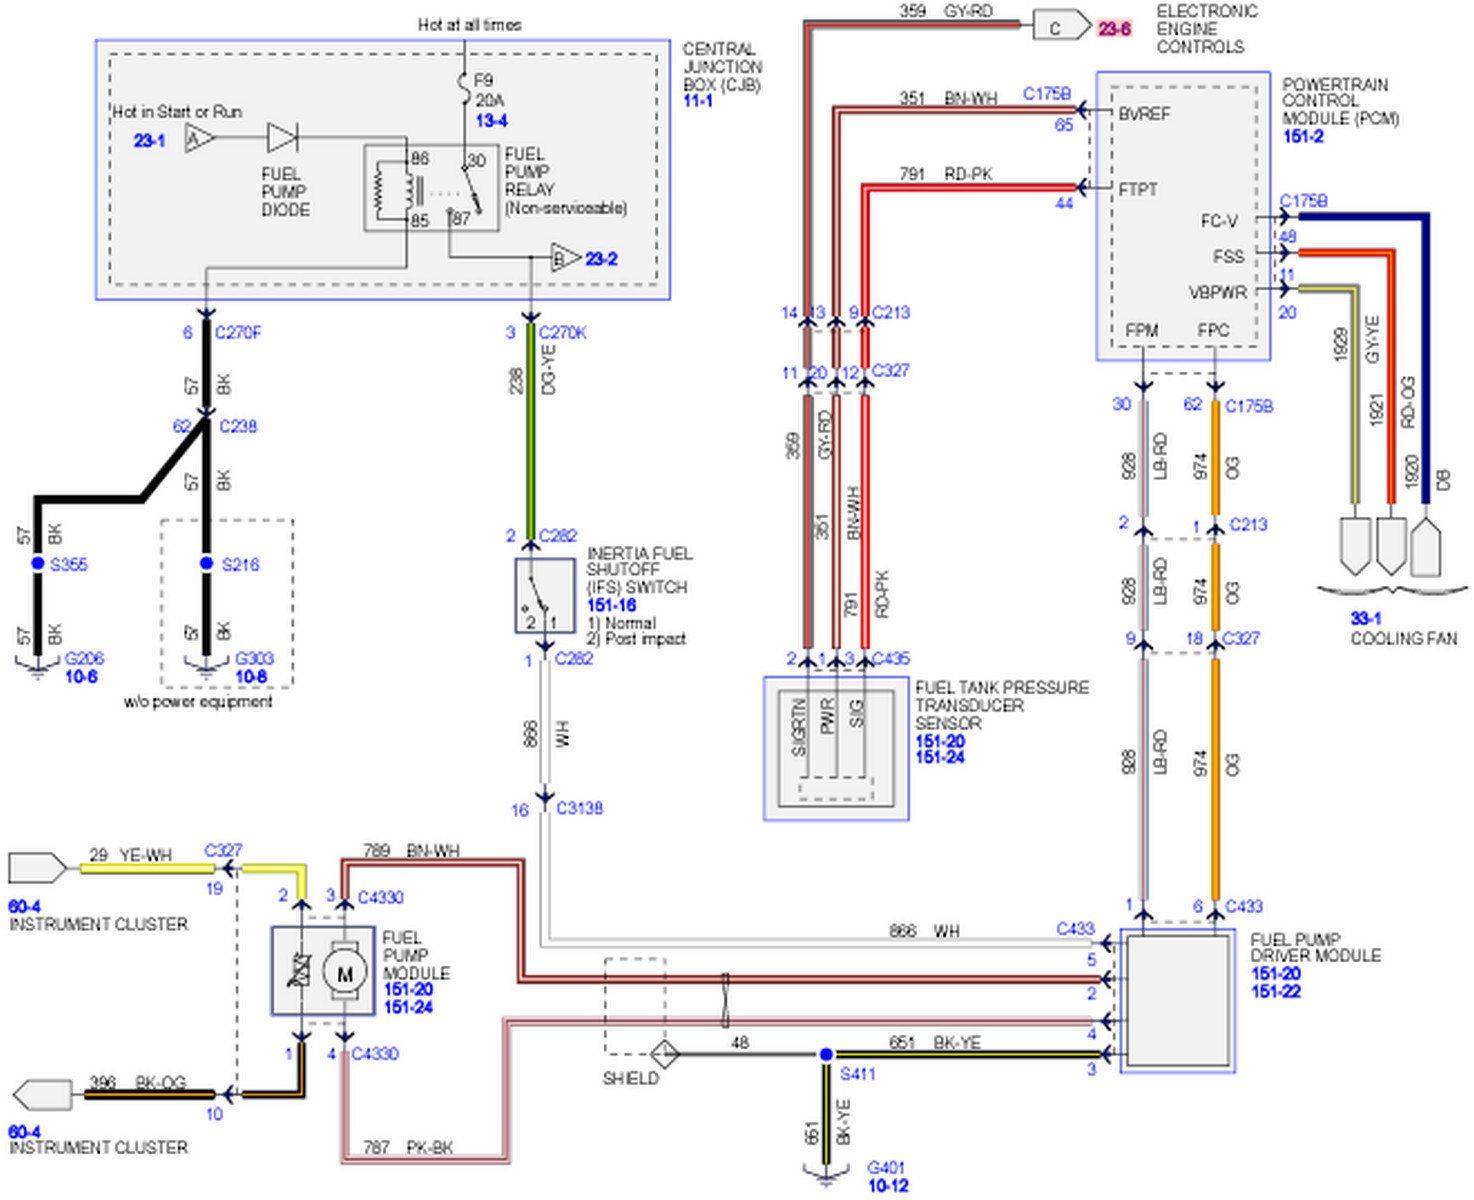 Ford Fuel Pump Wiring Diagram Within | Ford ranger, Diagram, FordPinterest